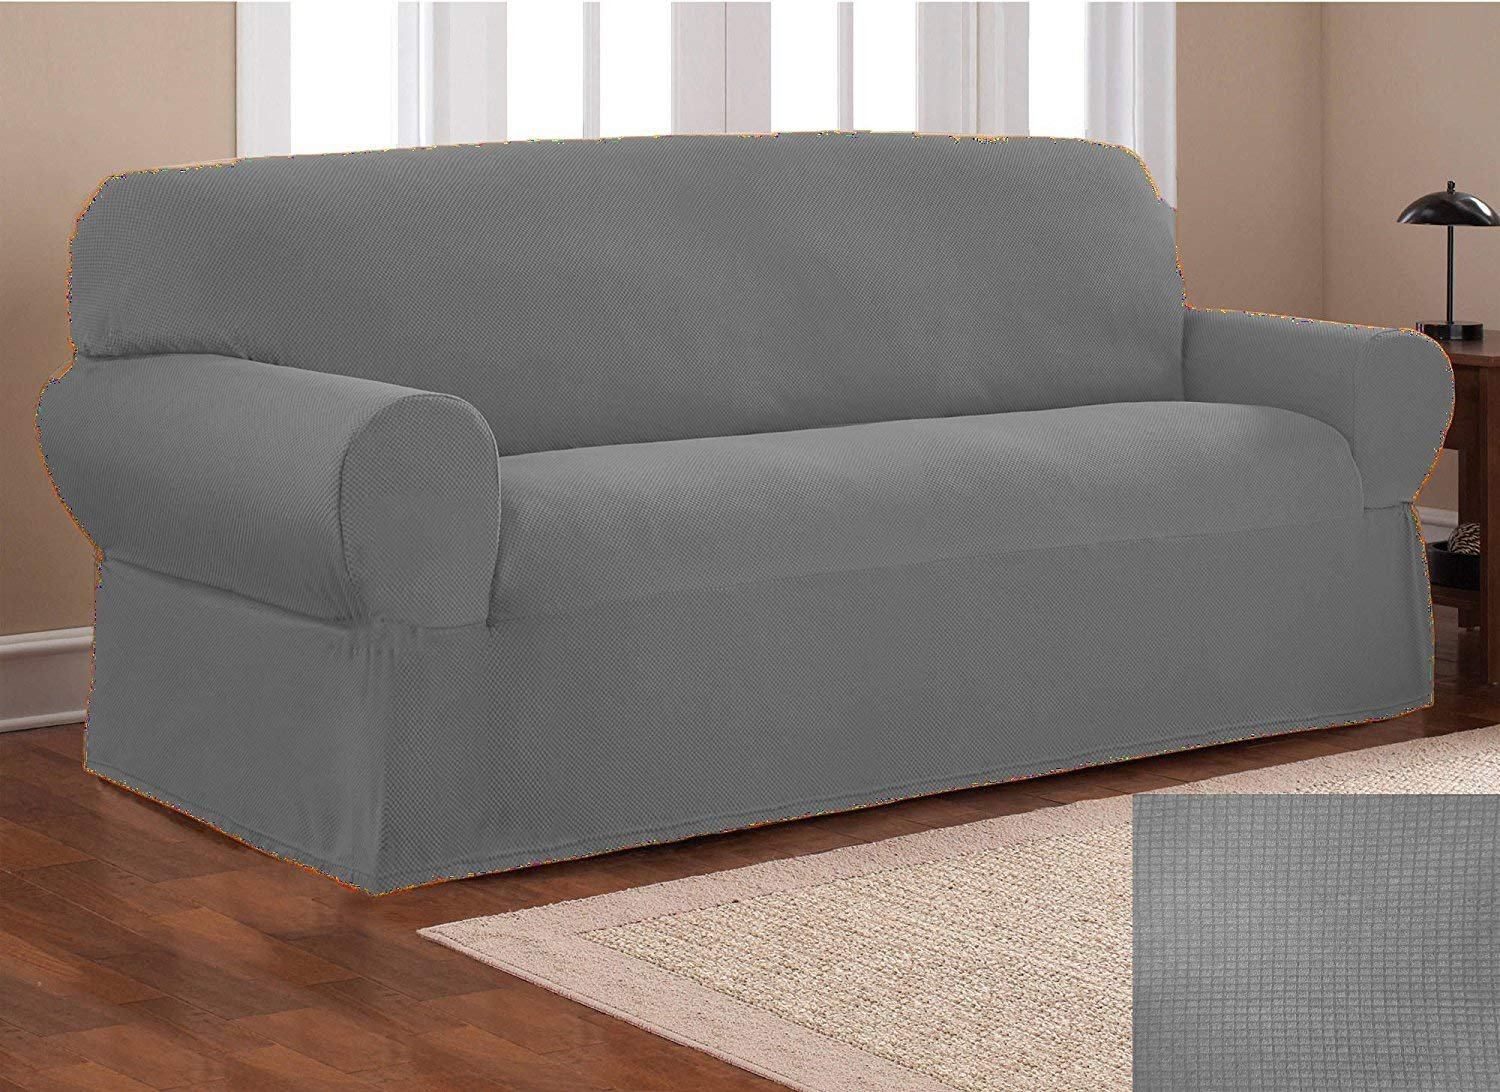 Fancy Collection Sure Fit Stretch Fabric Sofa Slipcover Sofa Cover Solid New #Stella (Black, 1 pc Sofa) Fancy Linen